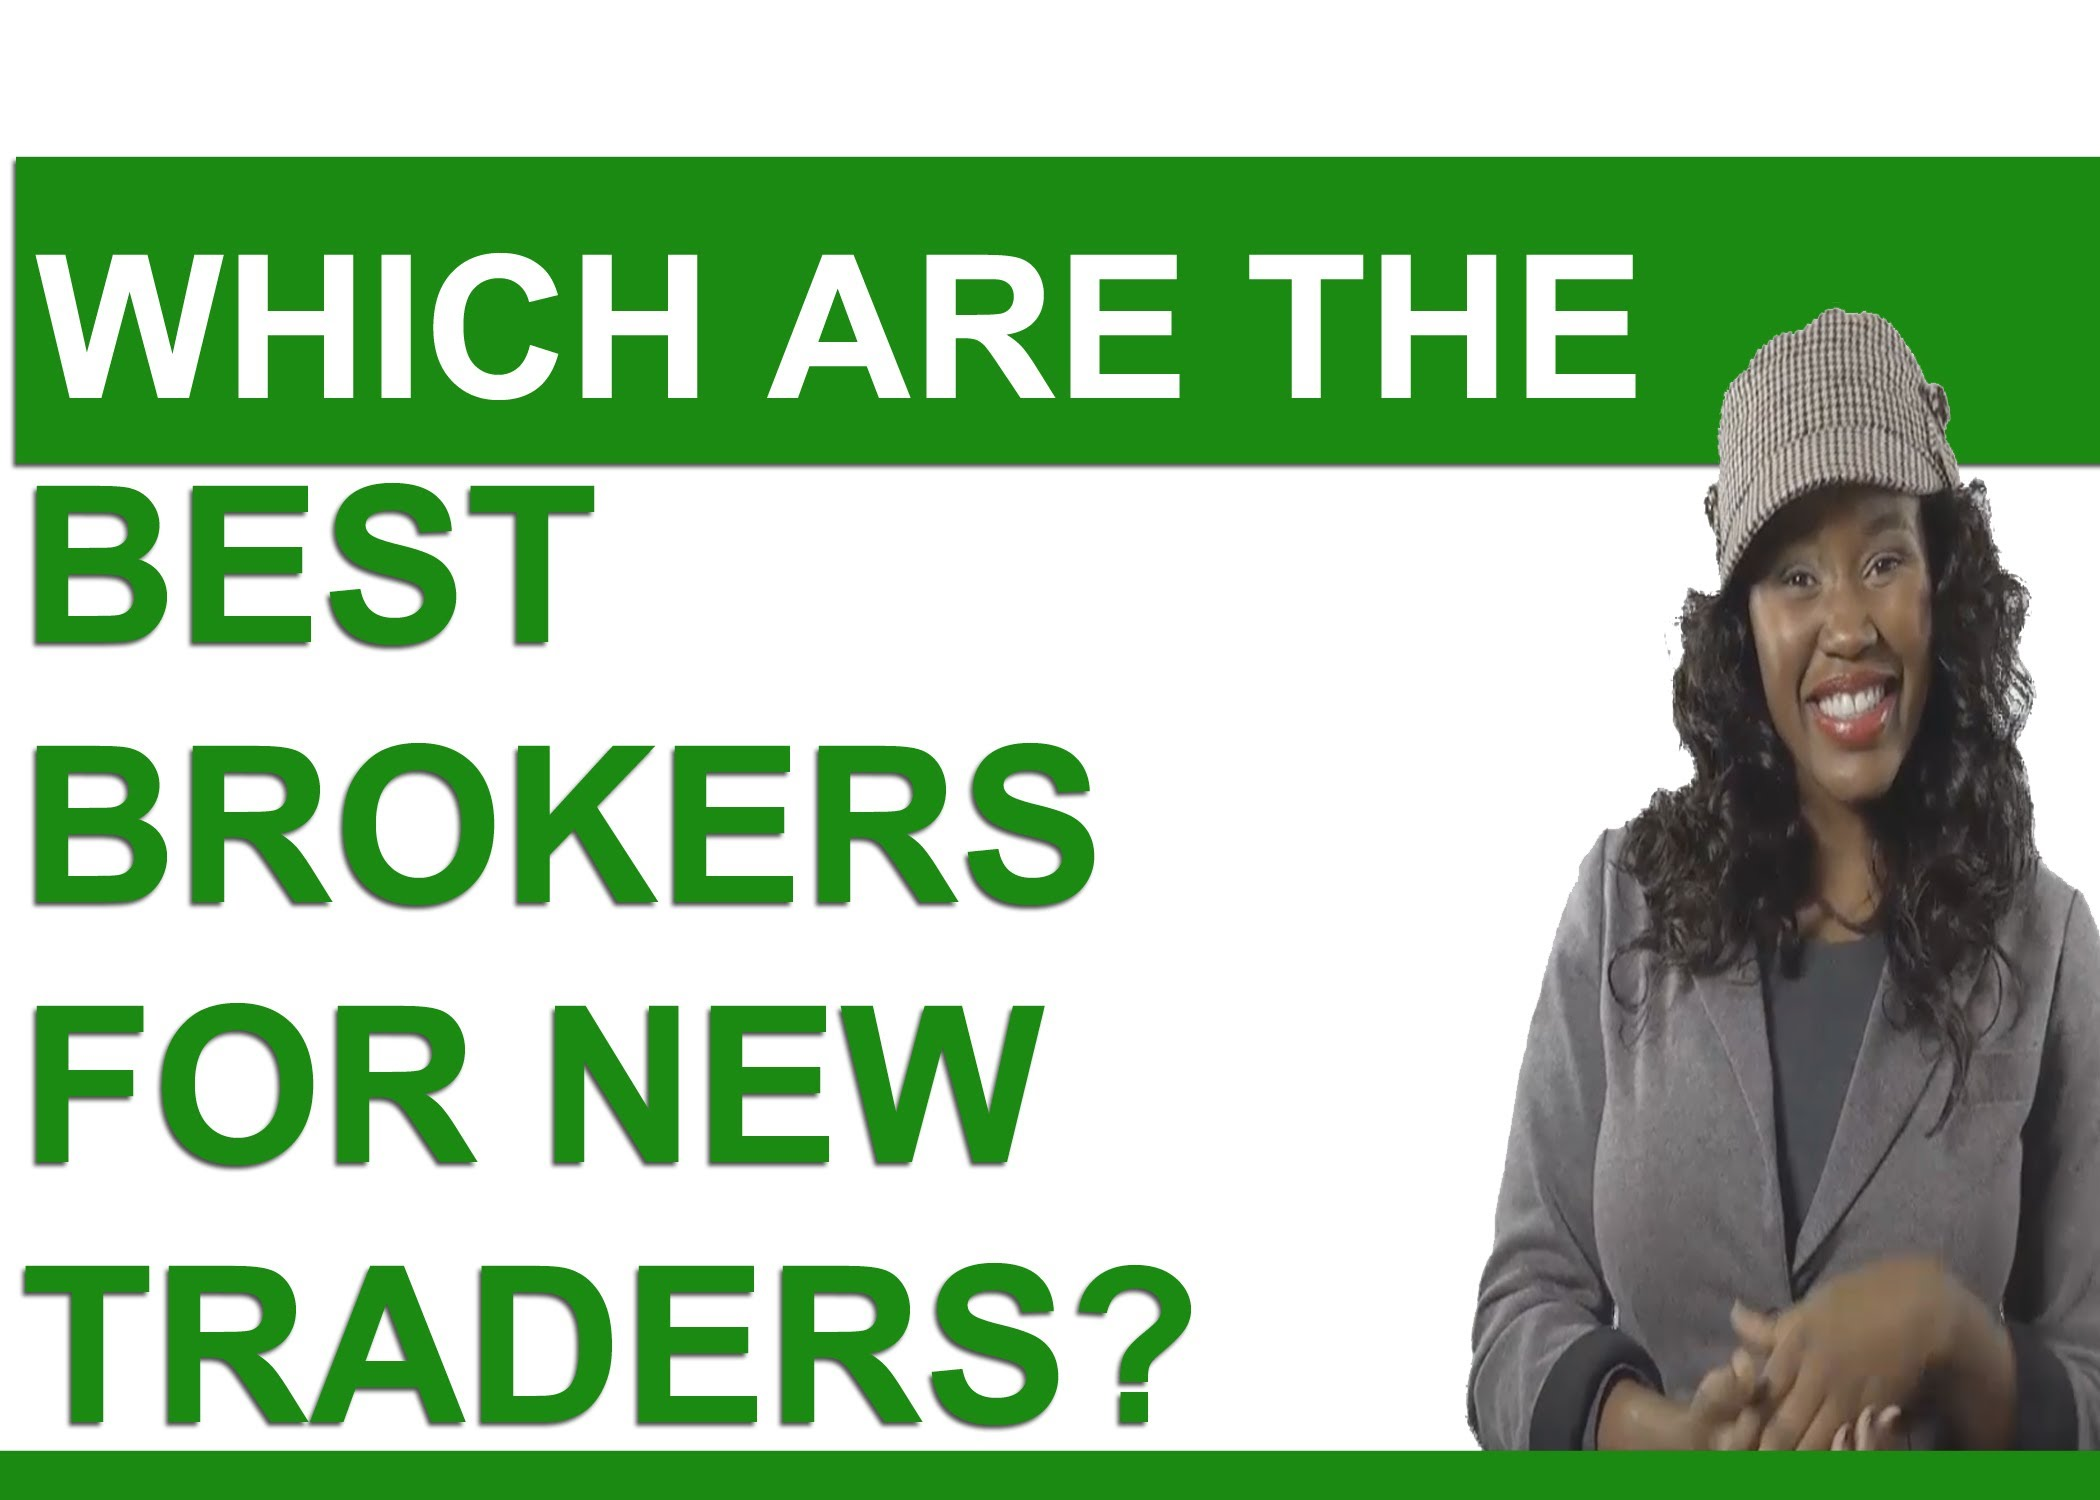 Stock Trading Brokers: Which are the best brokers for new traders?